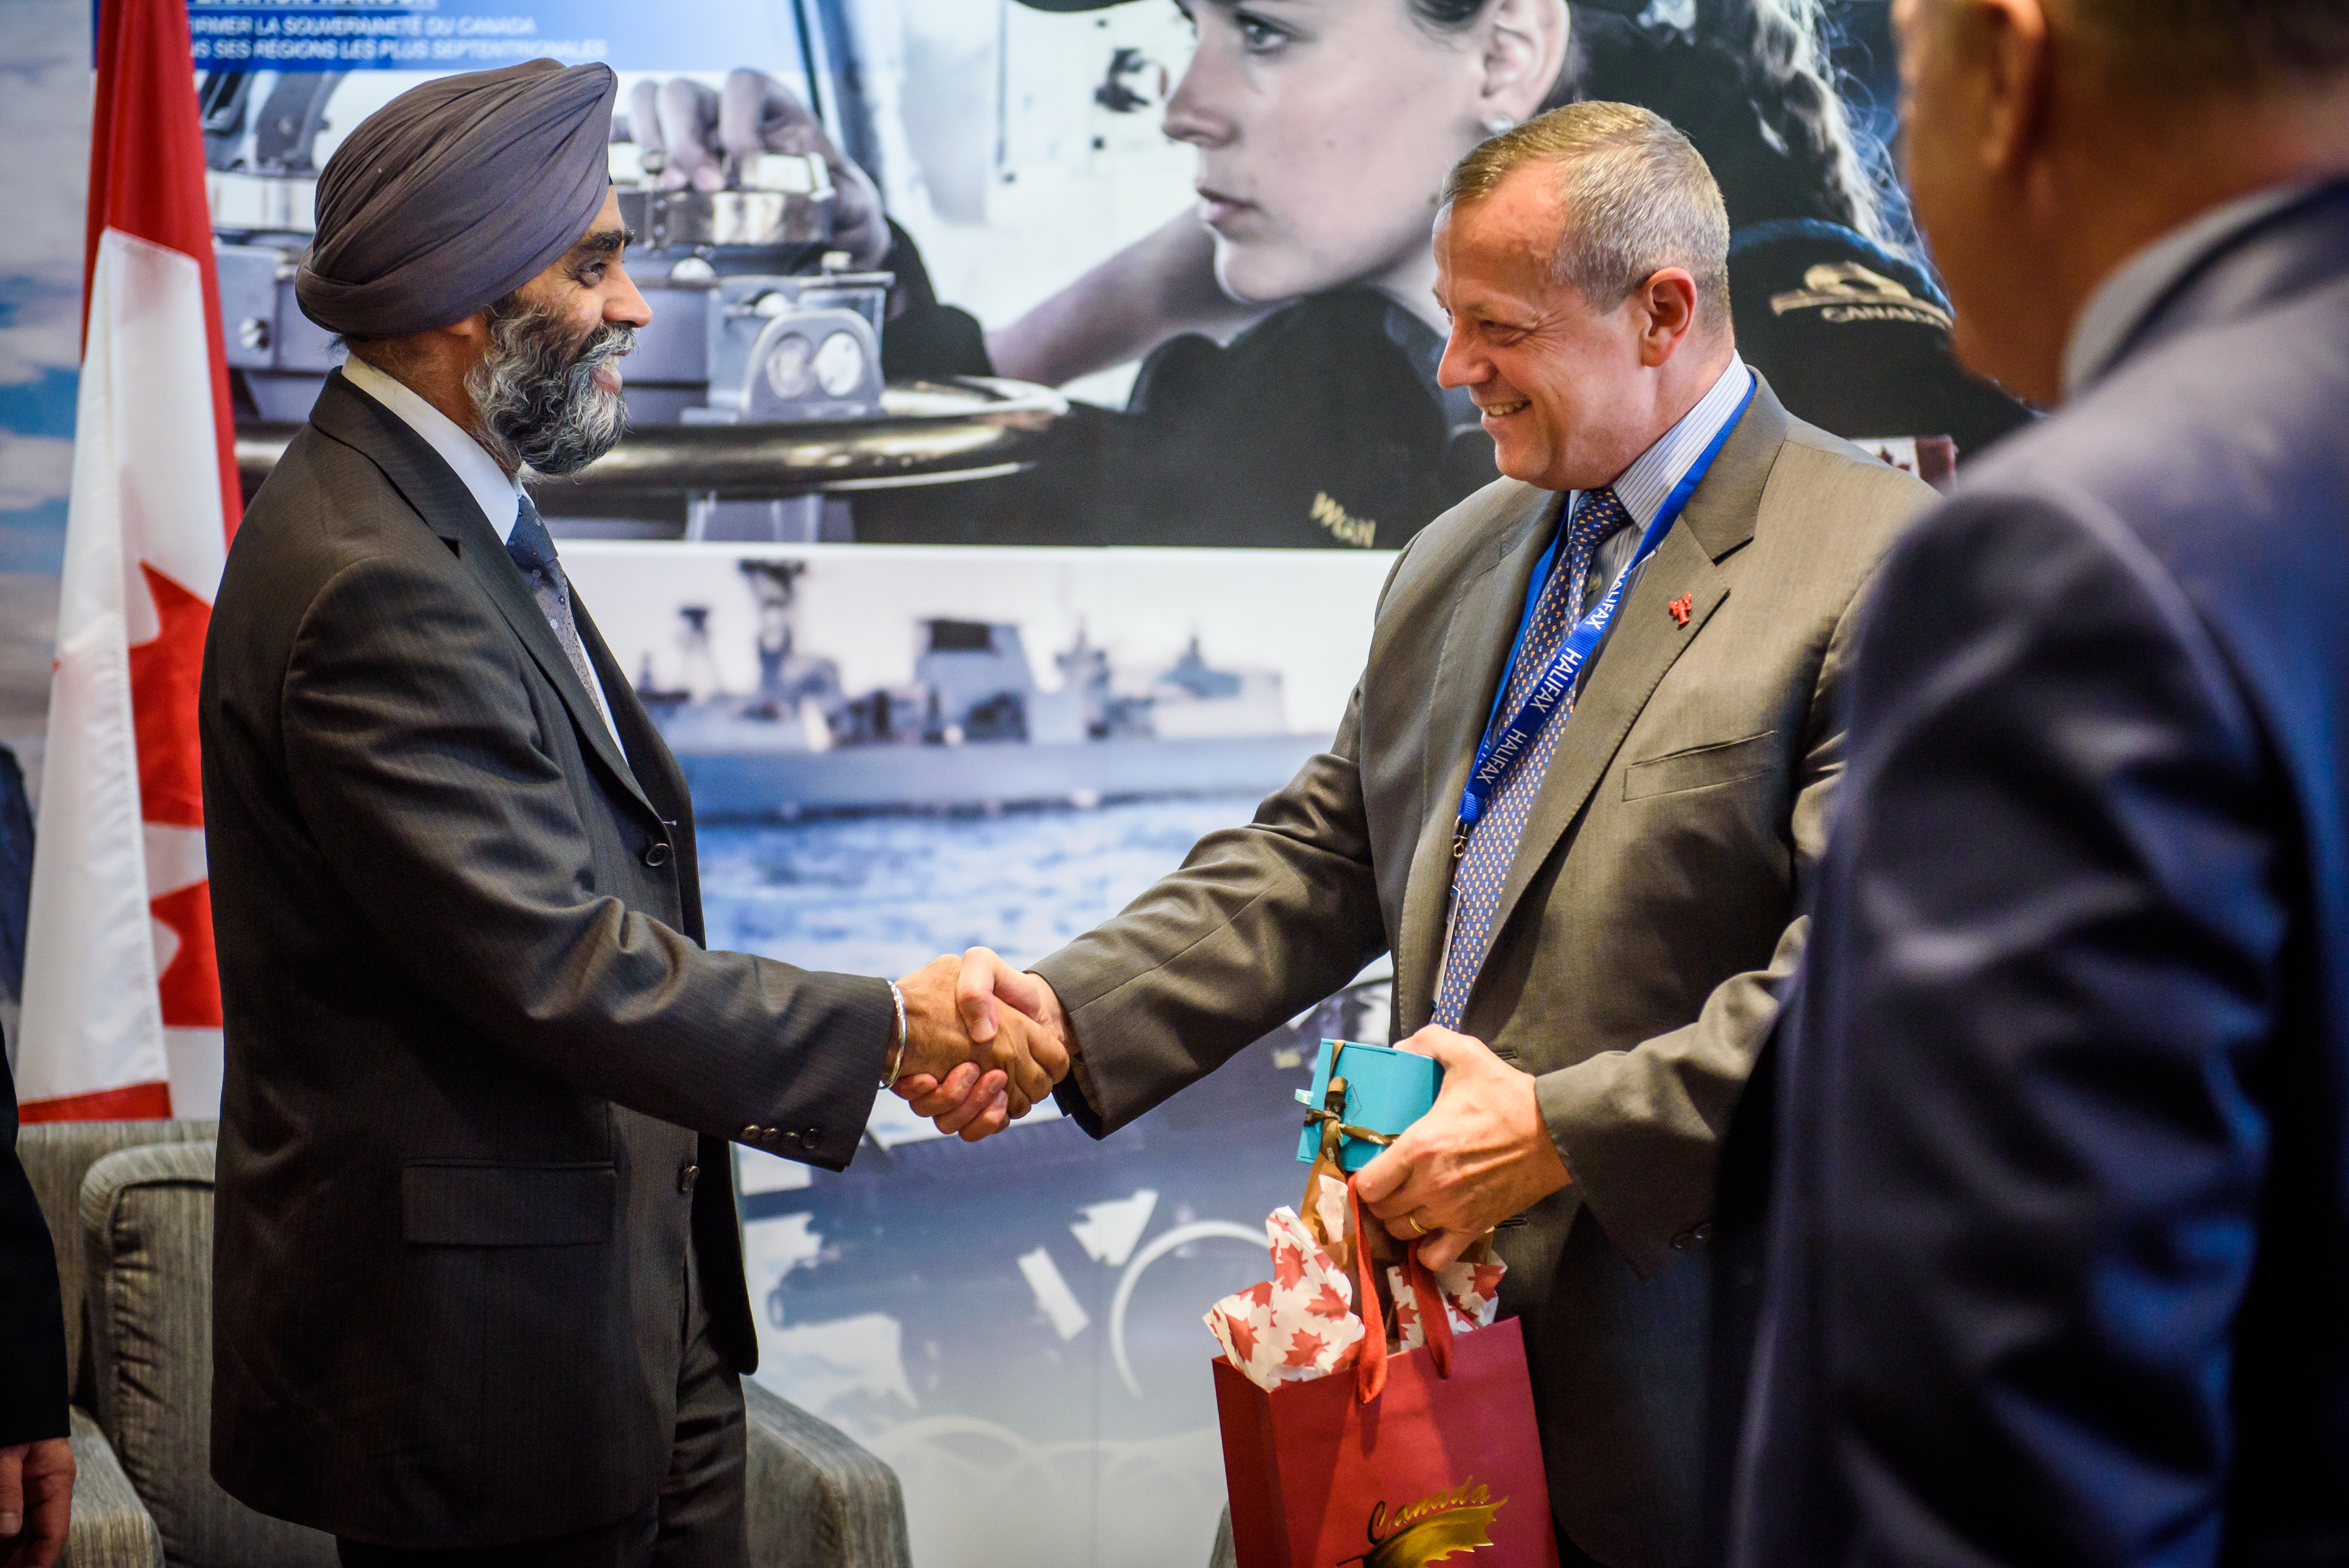 Minister Harjit Sajjan (Minister of National Defence, Canada) and General (ret.) John Allen (Co-Director for the Center for 21st Century Security and Intelligence, The Brookings Institution)